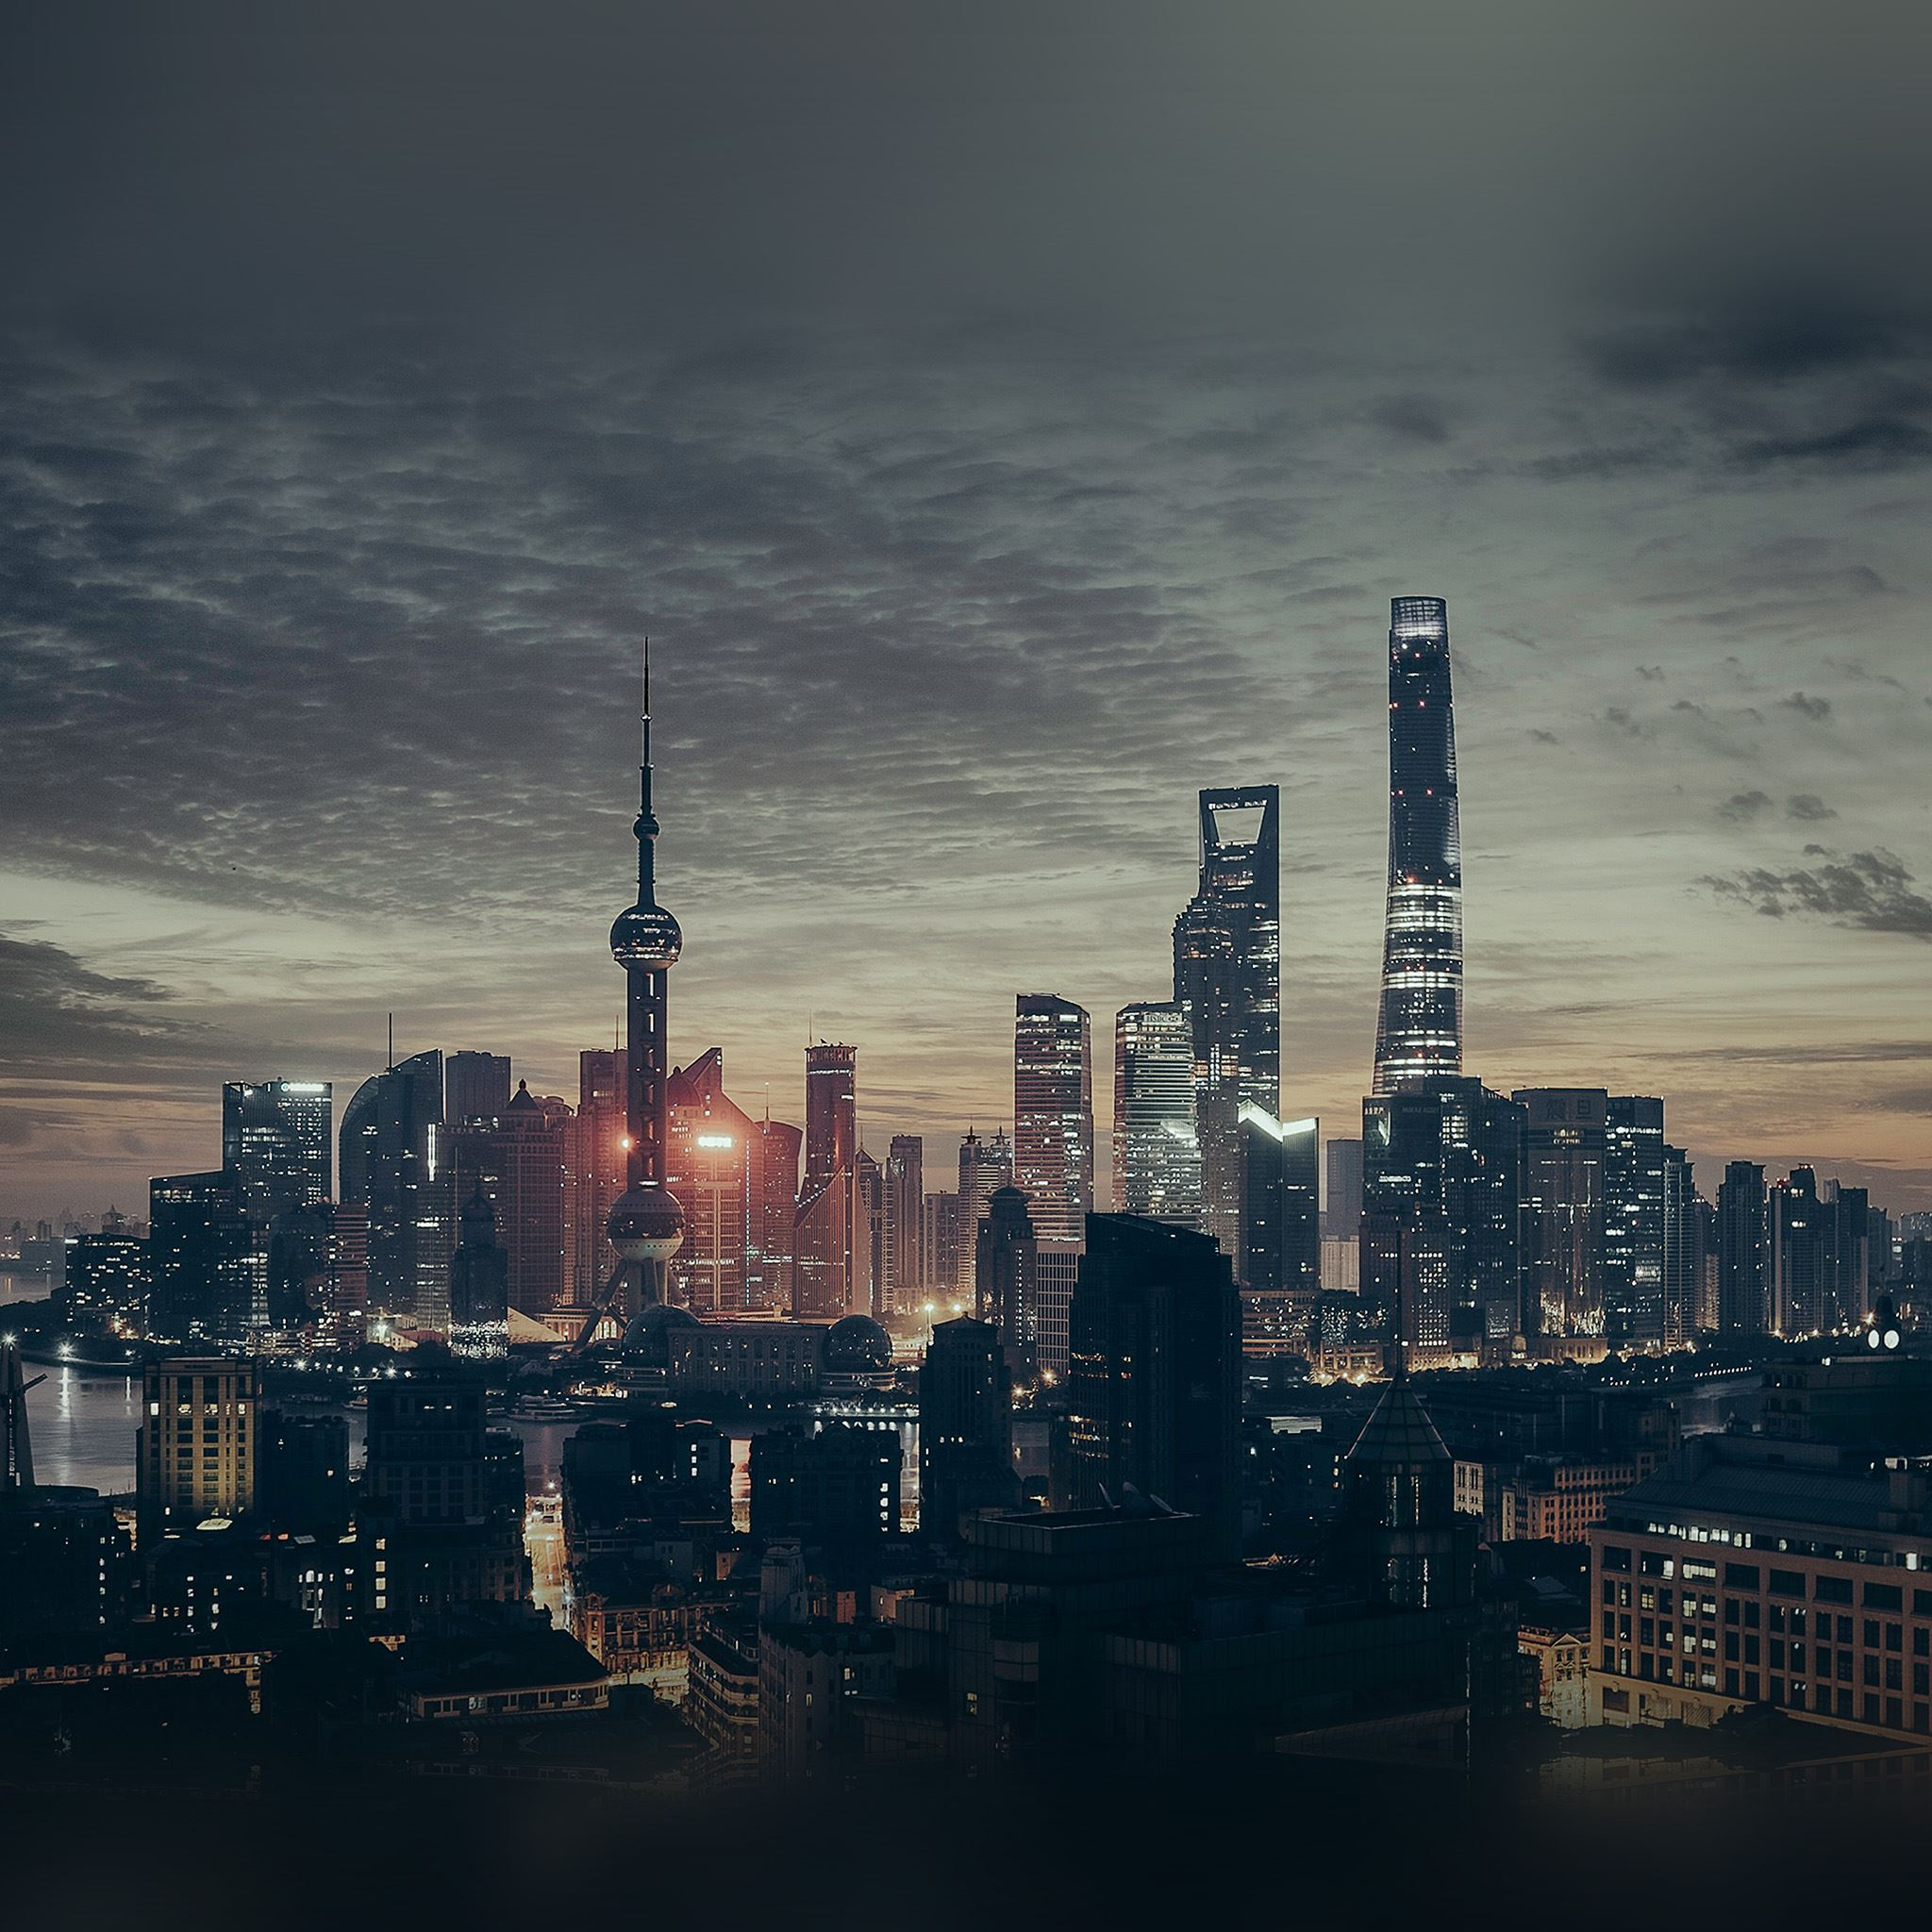 City Shanghai Night Building Skyline iPad Air wallpaper